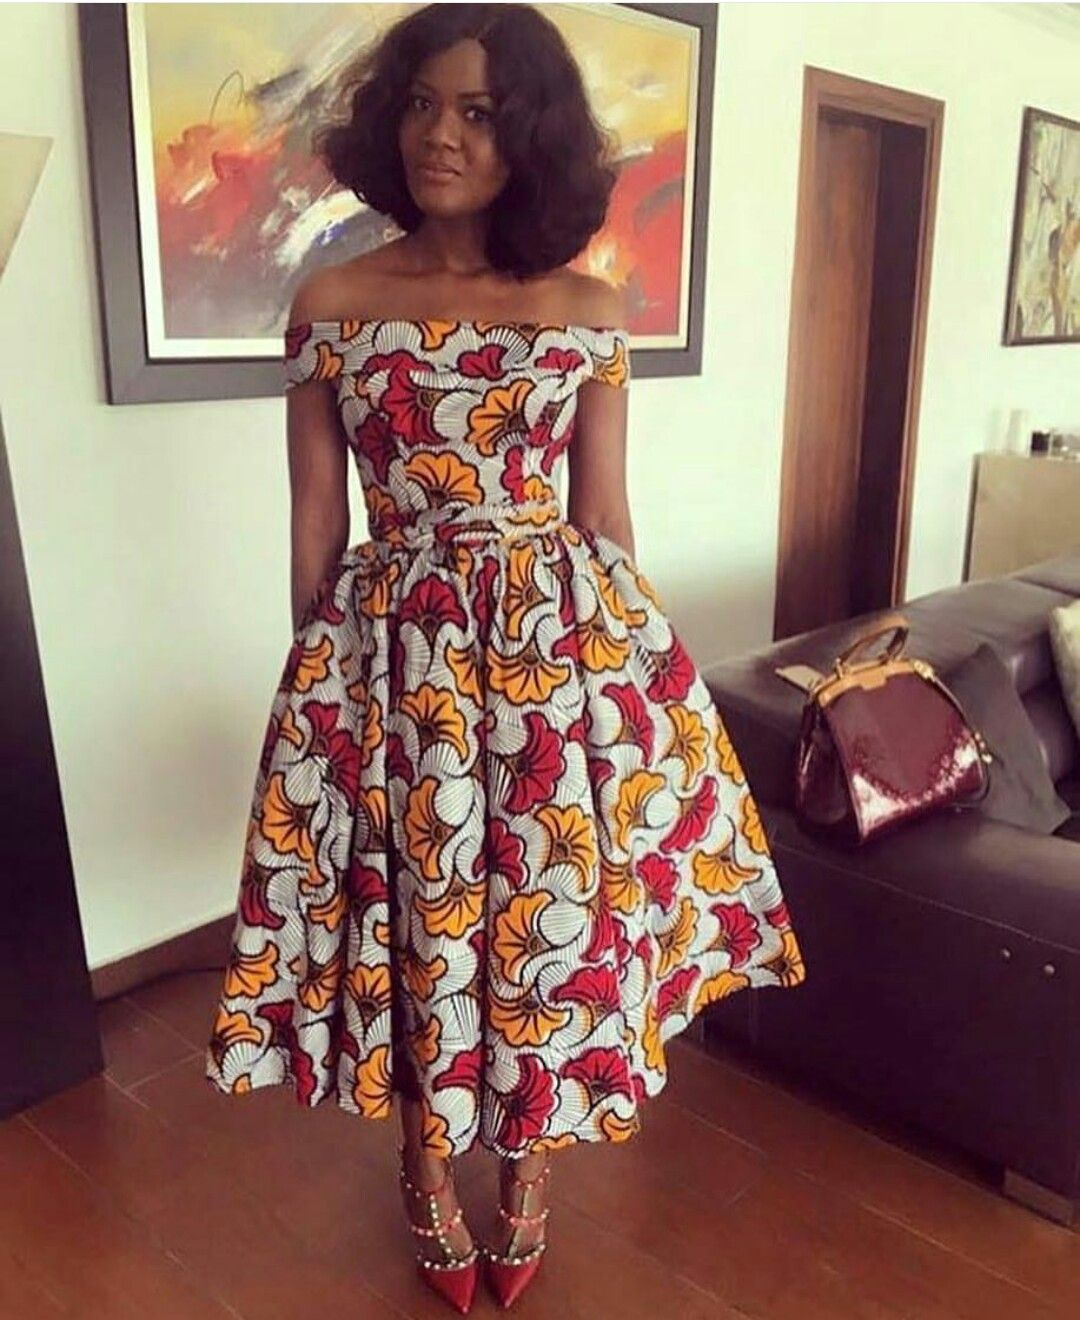 9d509a509a7f64 Off shoulders flared chitenge dress. Kanyget fashions+. Off shoulders  flared chitenge dress. Kanyget fashions+ African Ankara ...